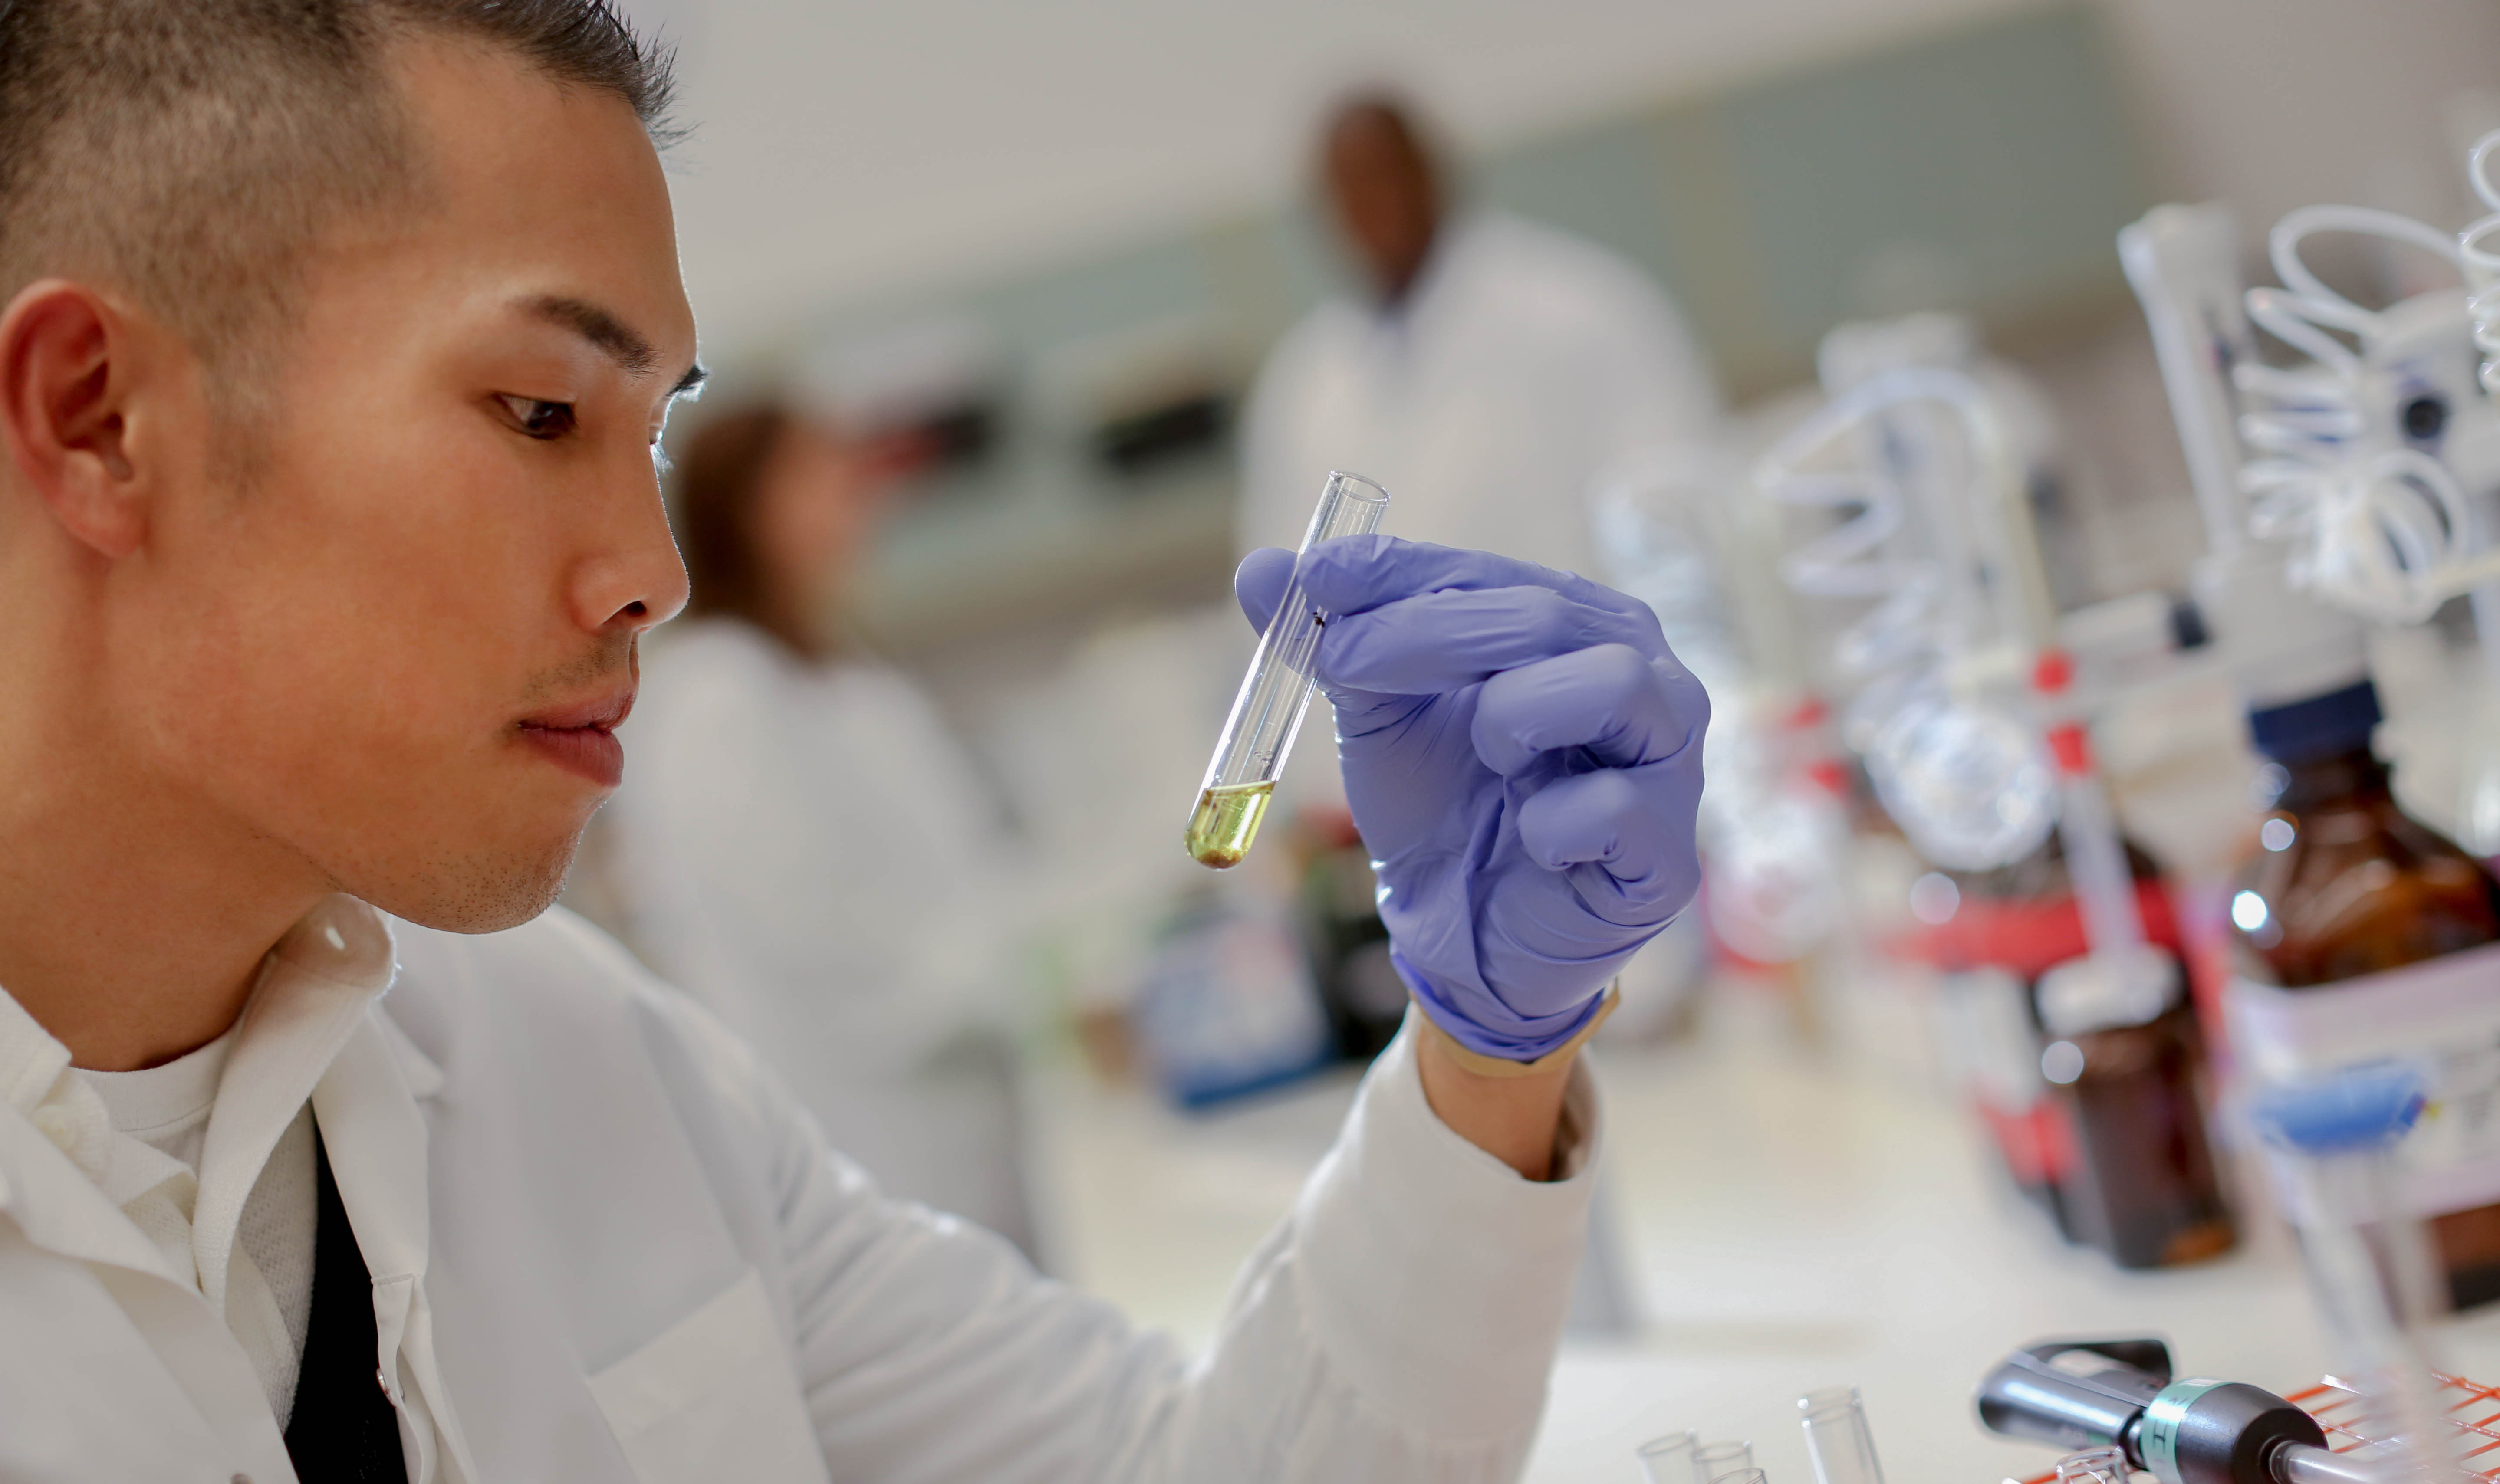 Reasons for testing: Pre-employment drug testing   Quest